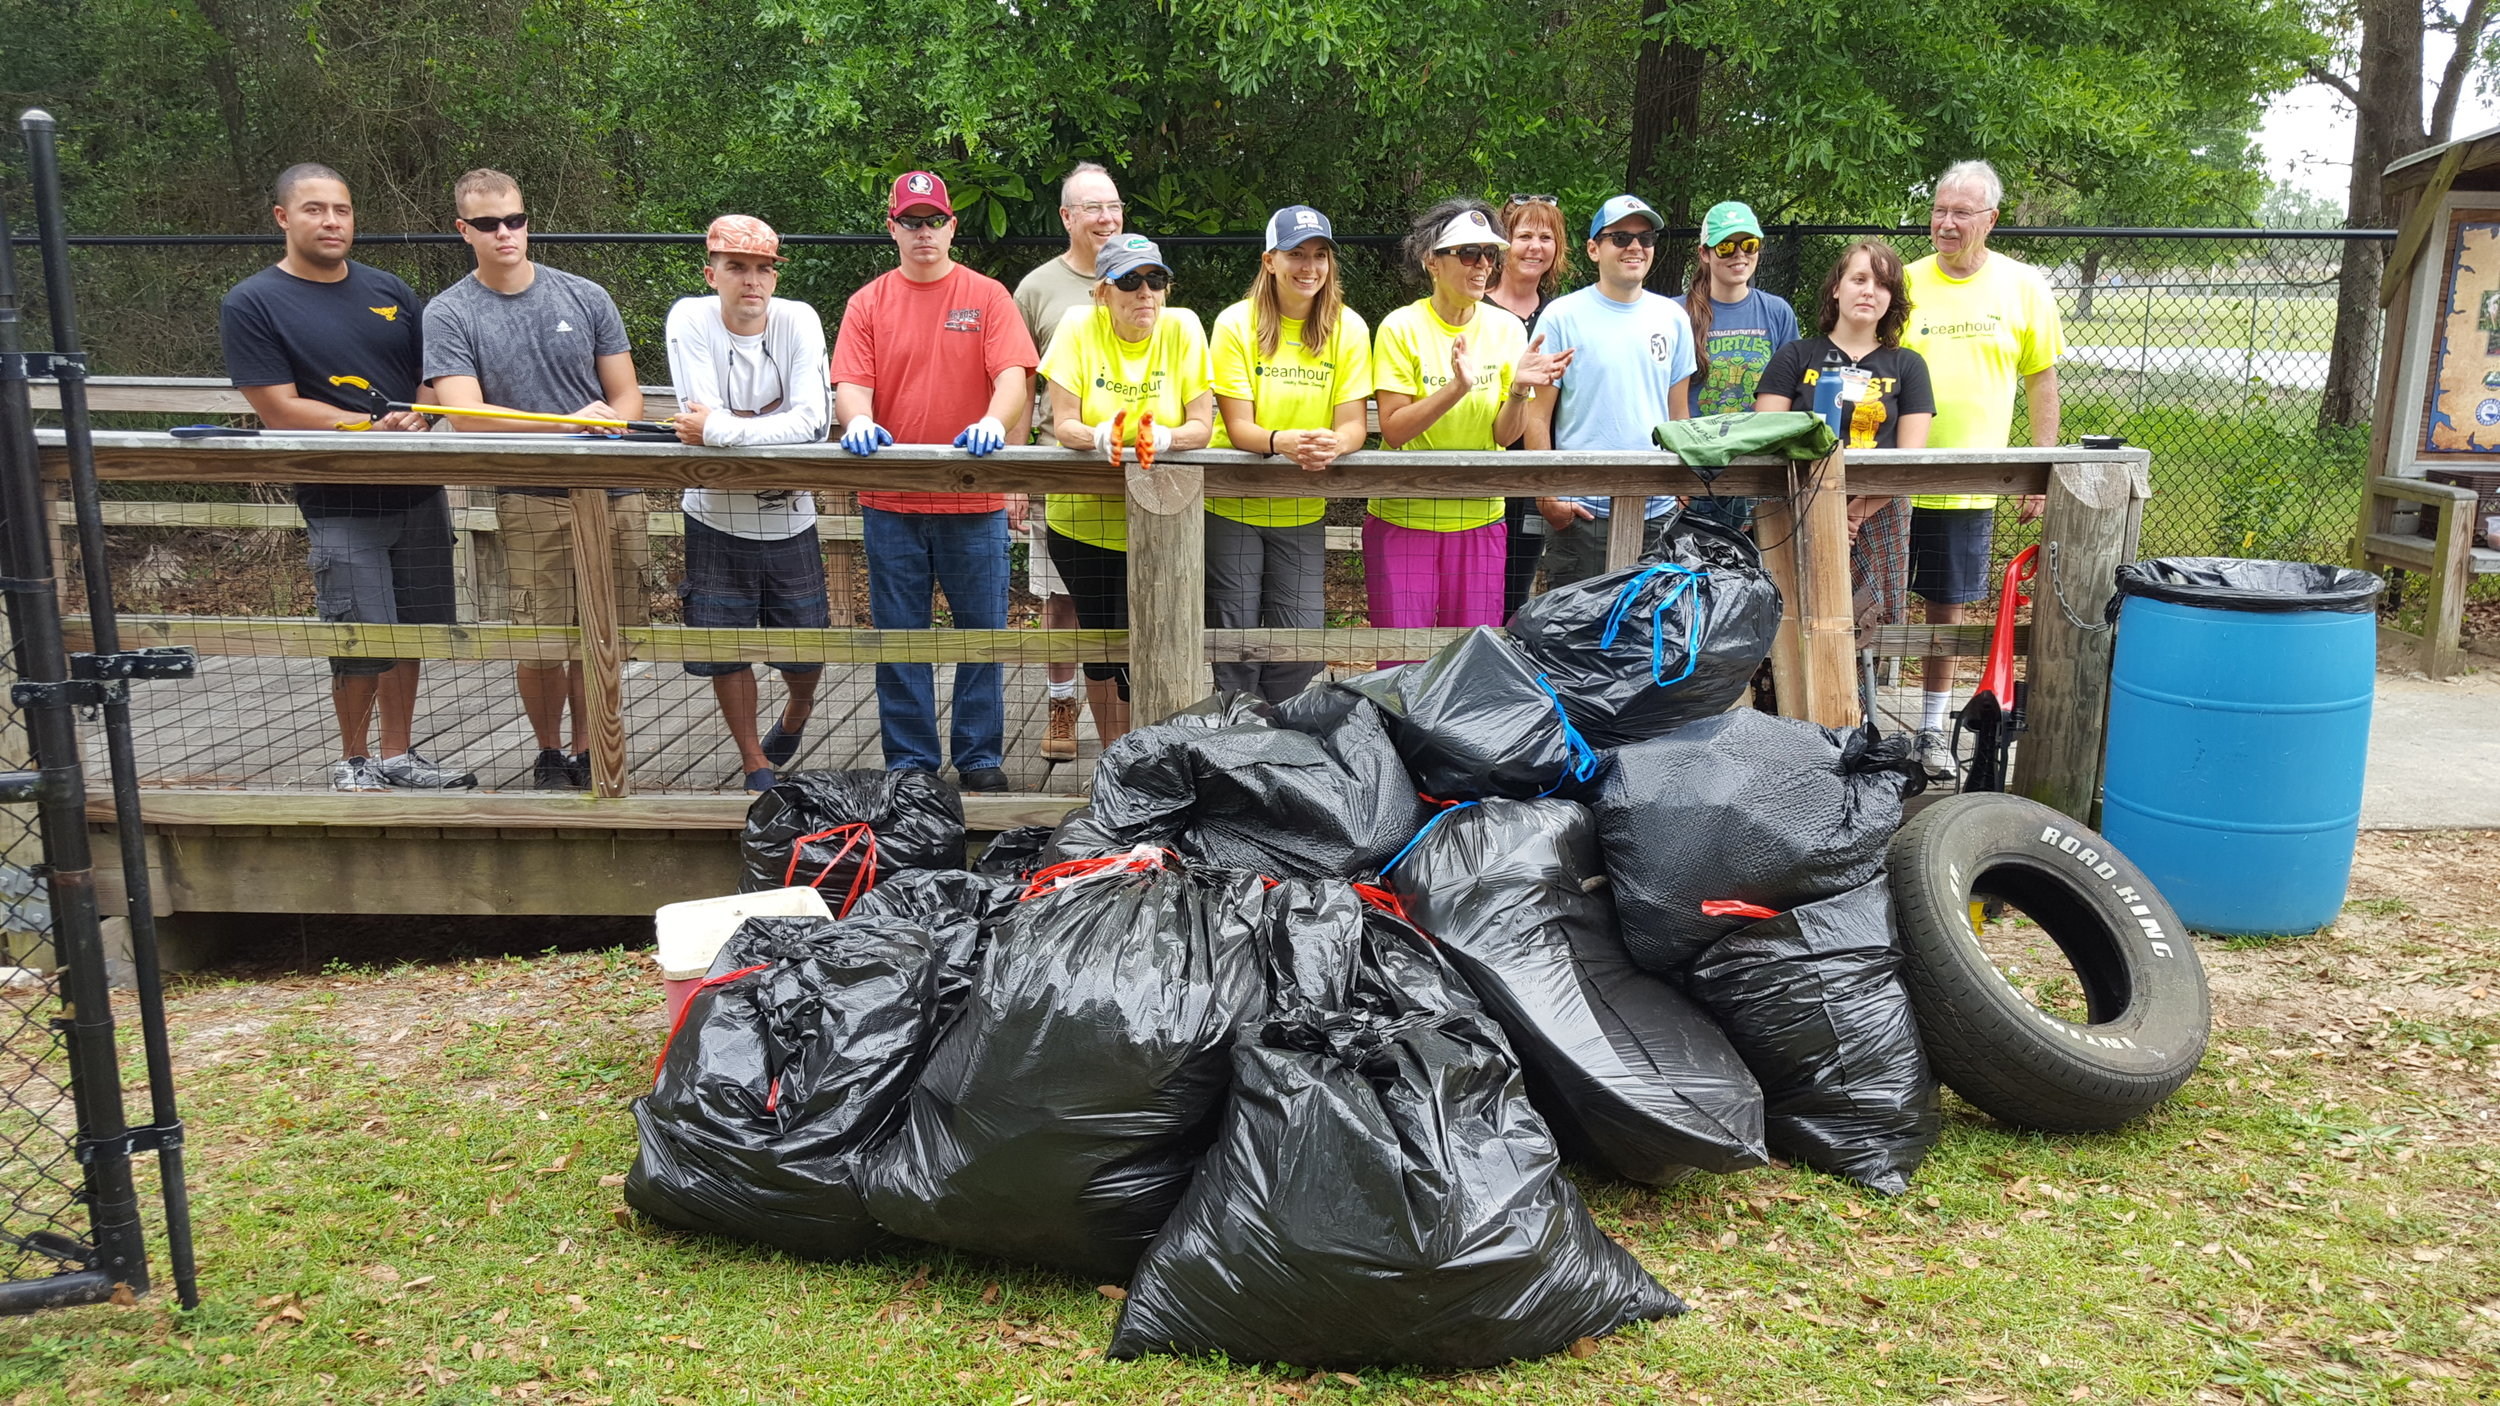 599 lbs of trash was picked up by 70 volunteers including Navy personnel